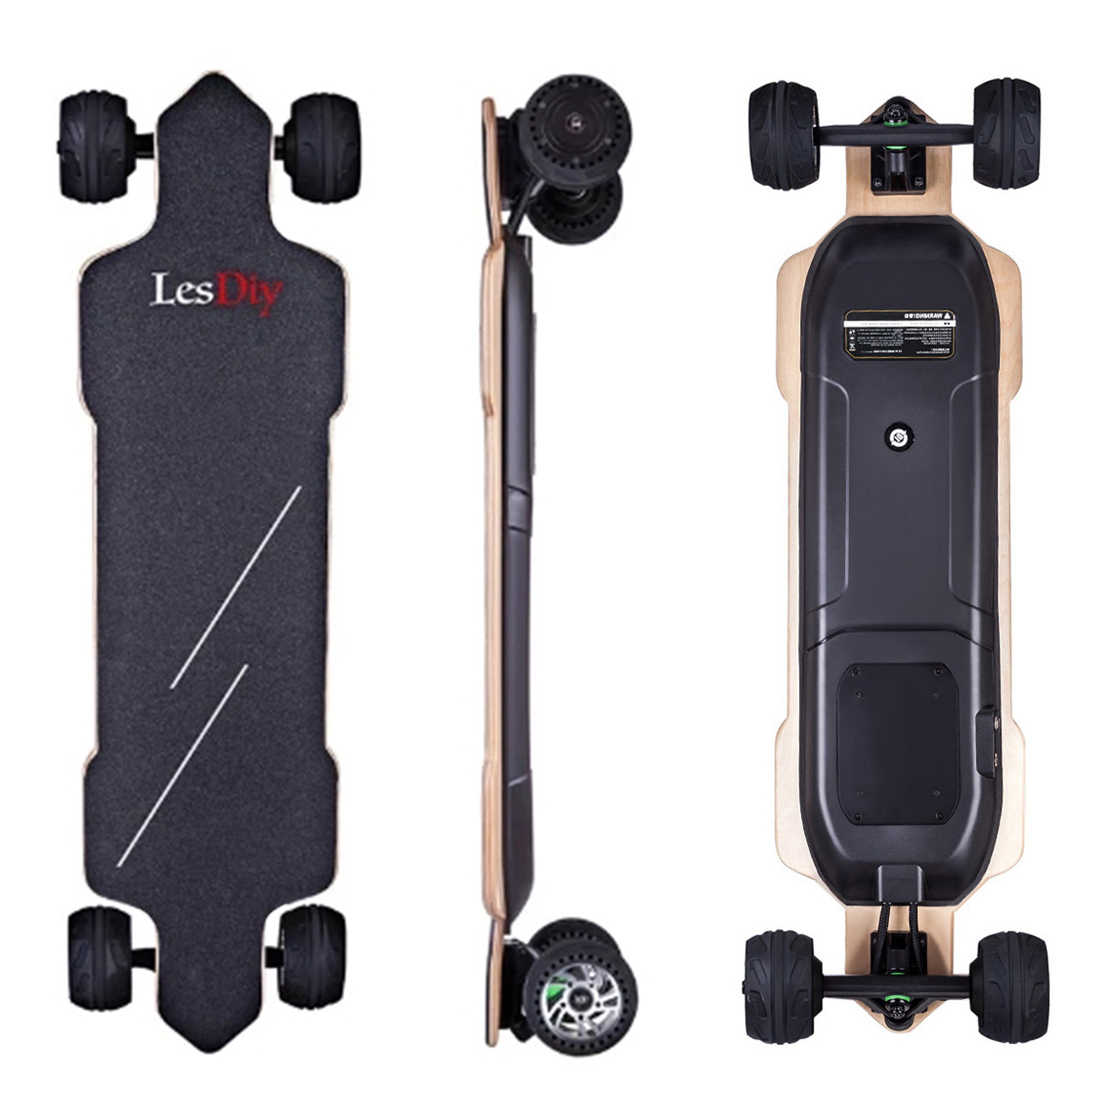 LESDIY Electric Scooter 4-Wheel Electric Skateboard with Four Speed Adjustable Endurance 30km Outdoor Activity Scooter